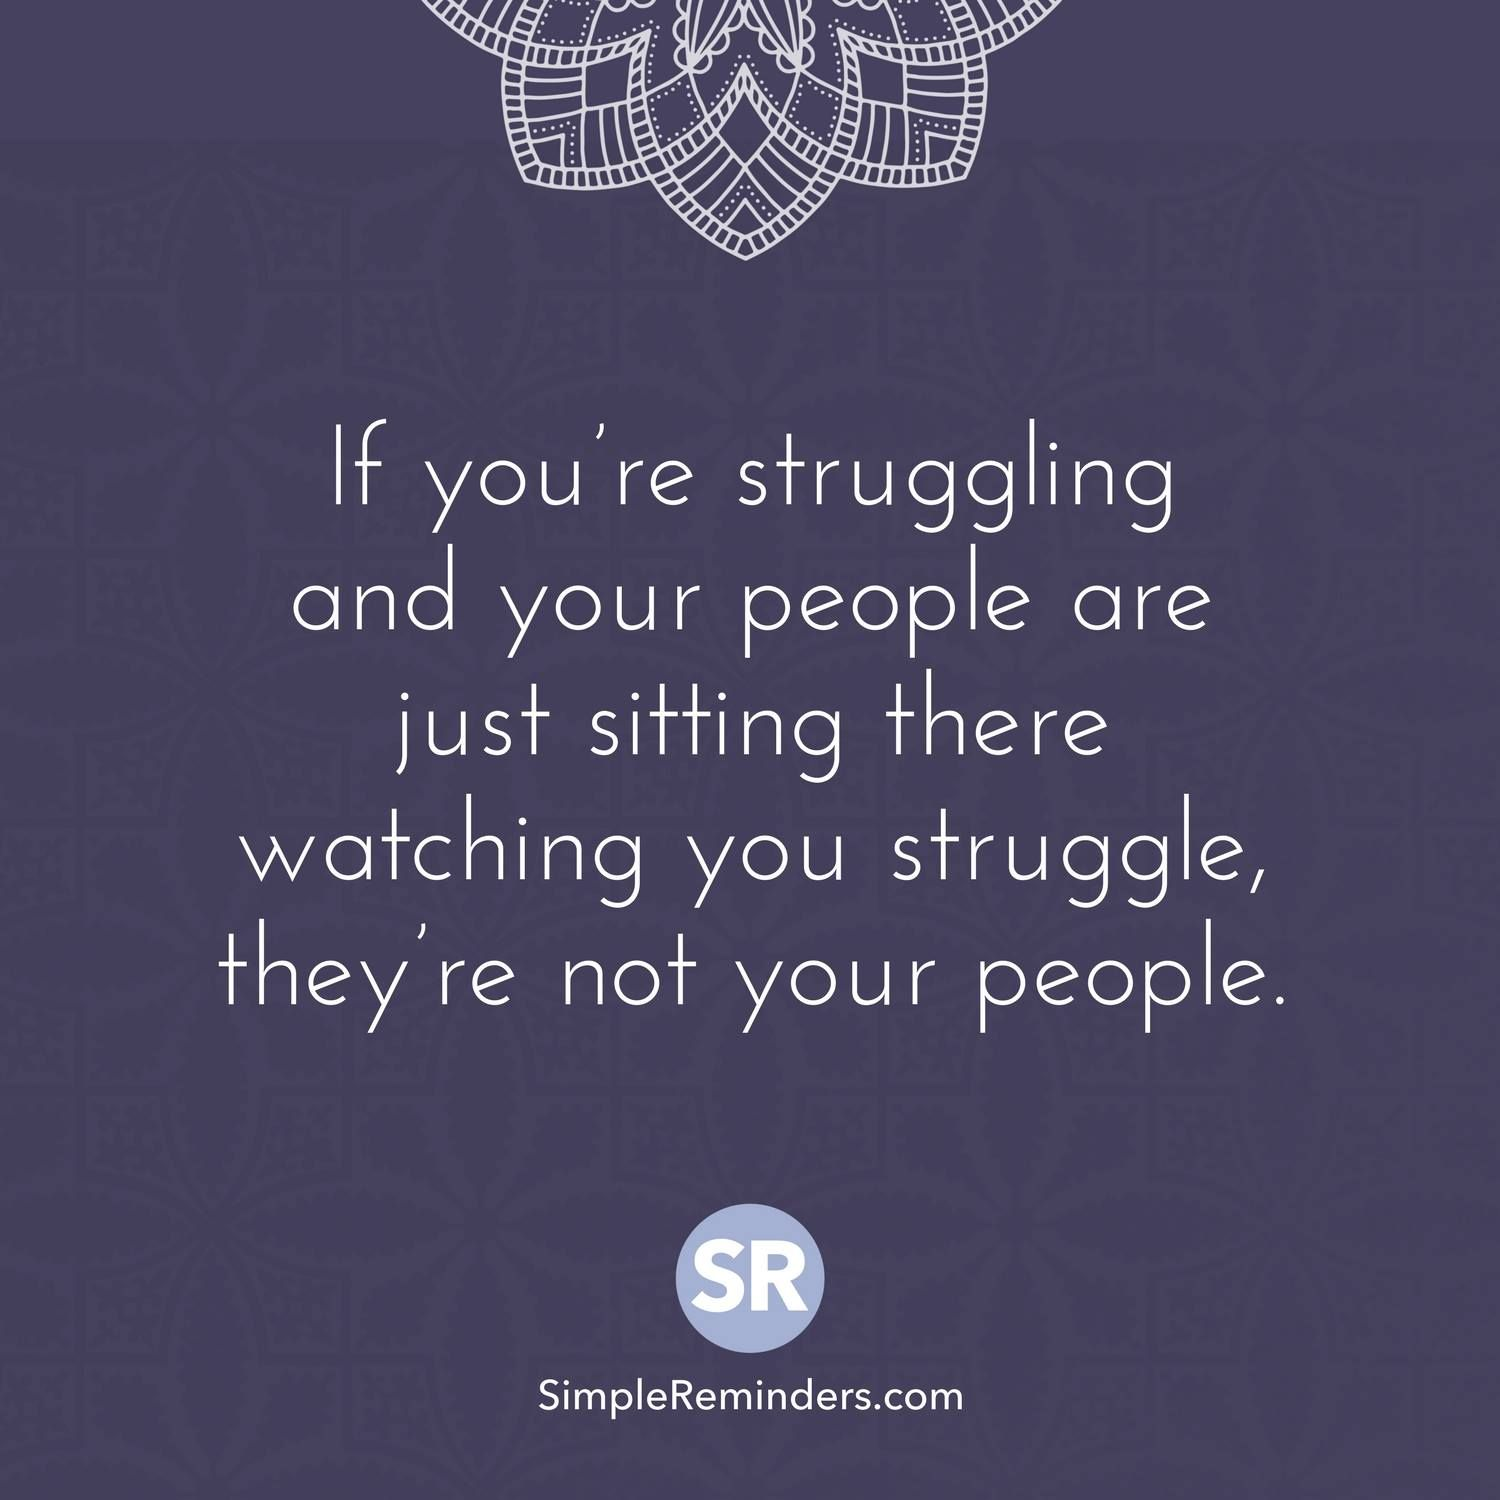 If You Re Struggling And Your People Are Just Sitting There Watching You Struggle They Re Not